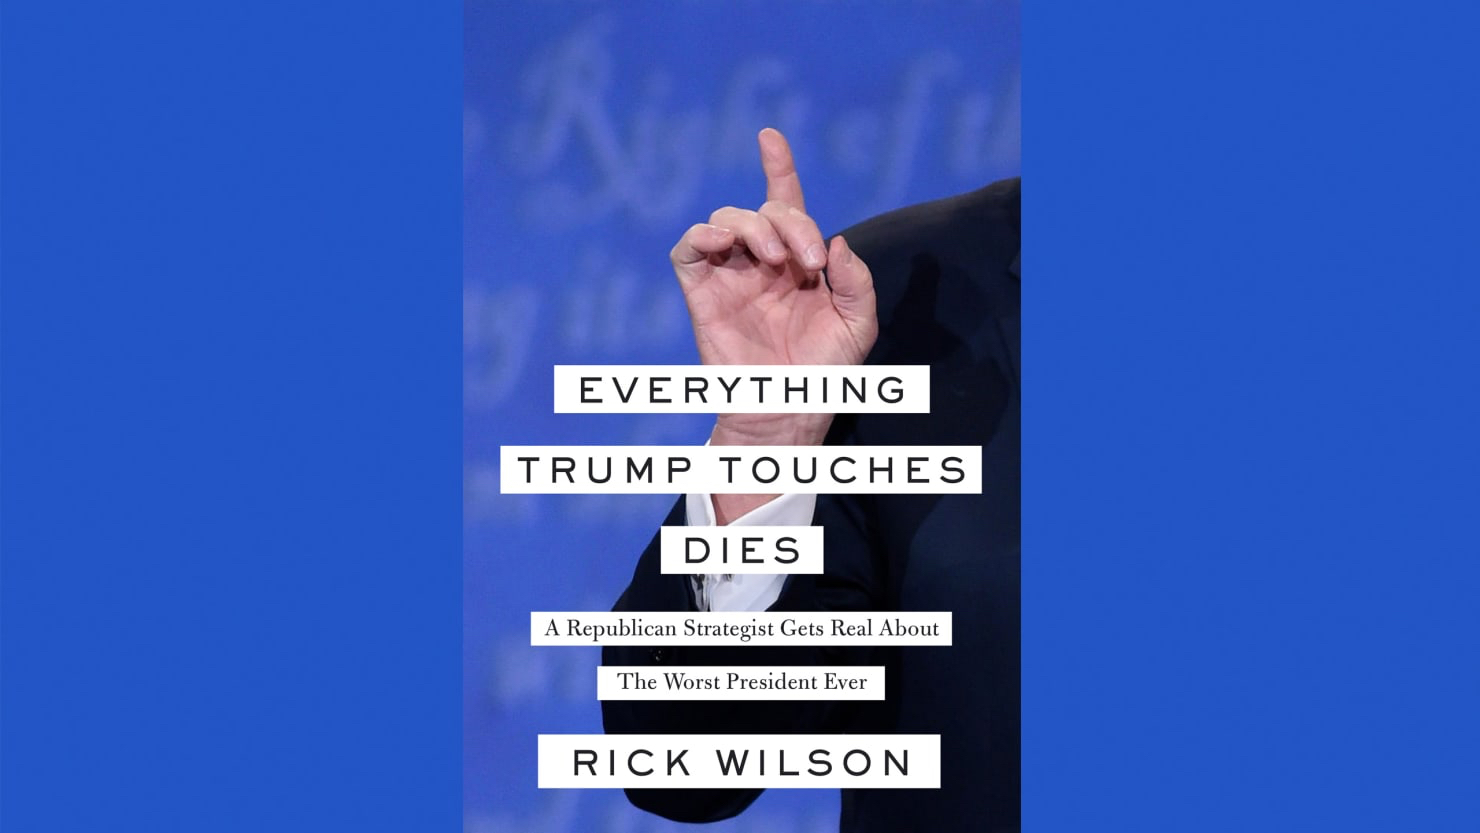 The Daily Beast: Simon & Schuster- Rick Wilson- 'Everything That Donald Trump Touches Dies Today'